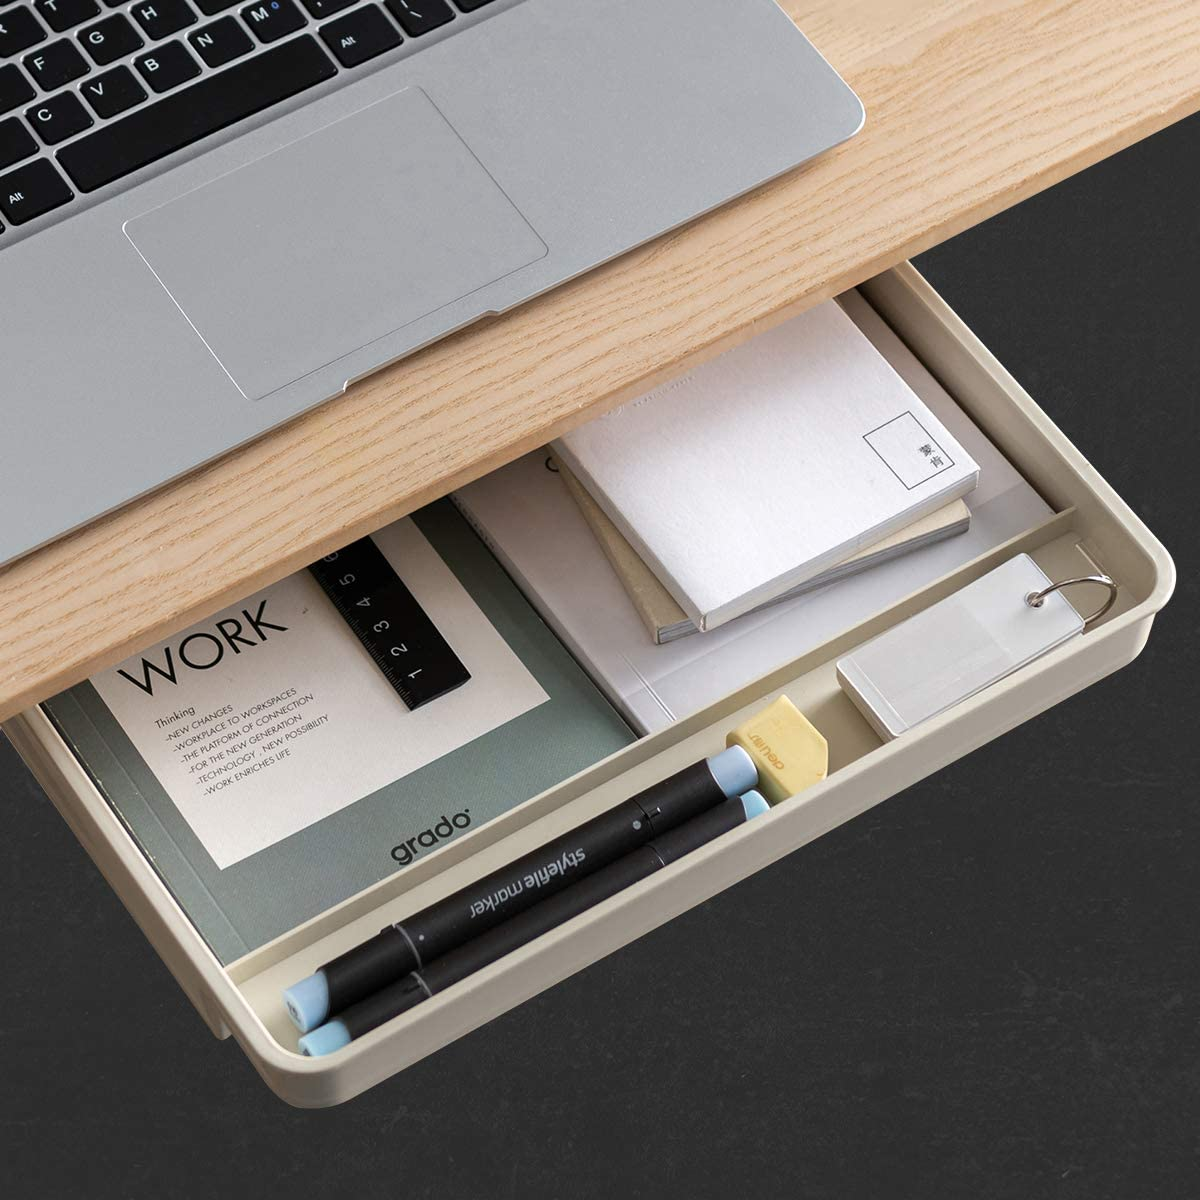 AirTaxiing Limited price sale Under Desk Drawer - Table Hidden O ! Super beauty product restock quality top! Large